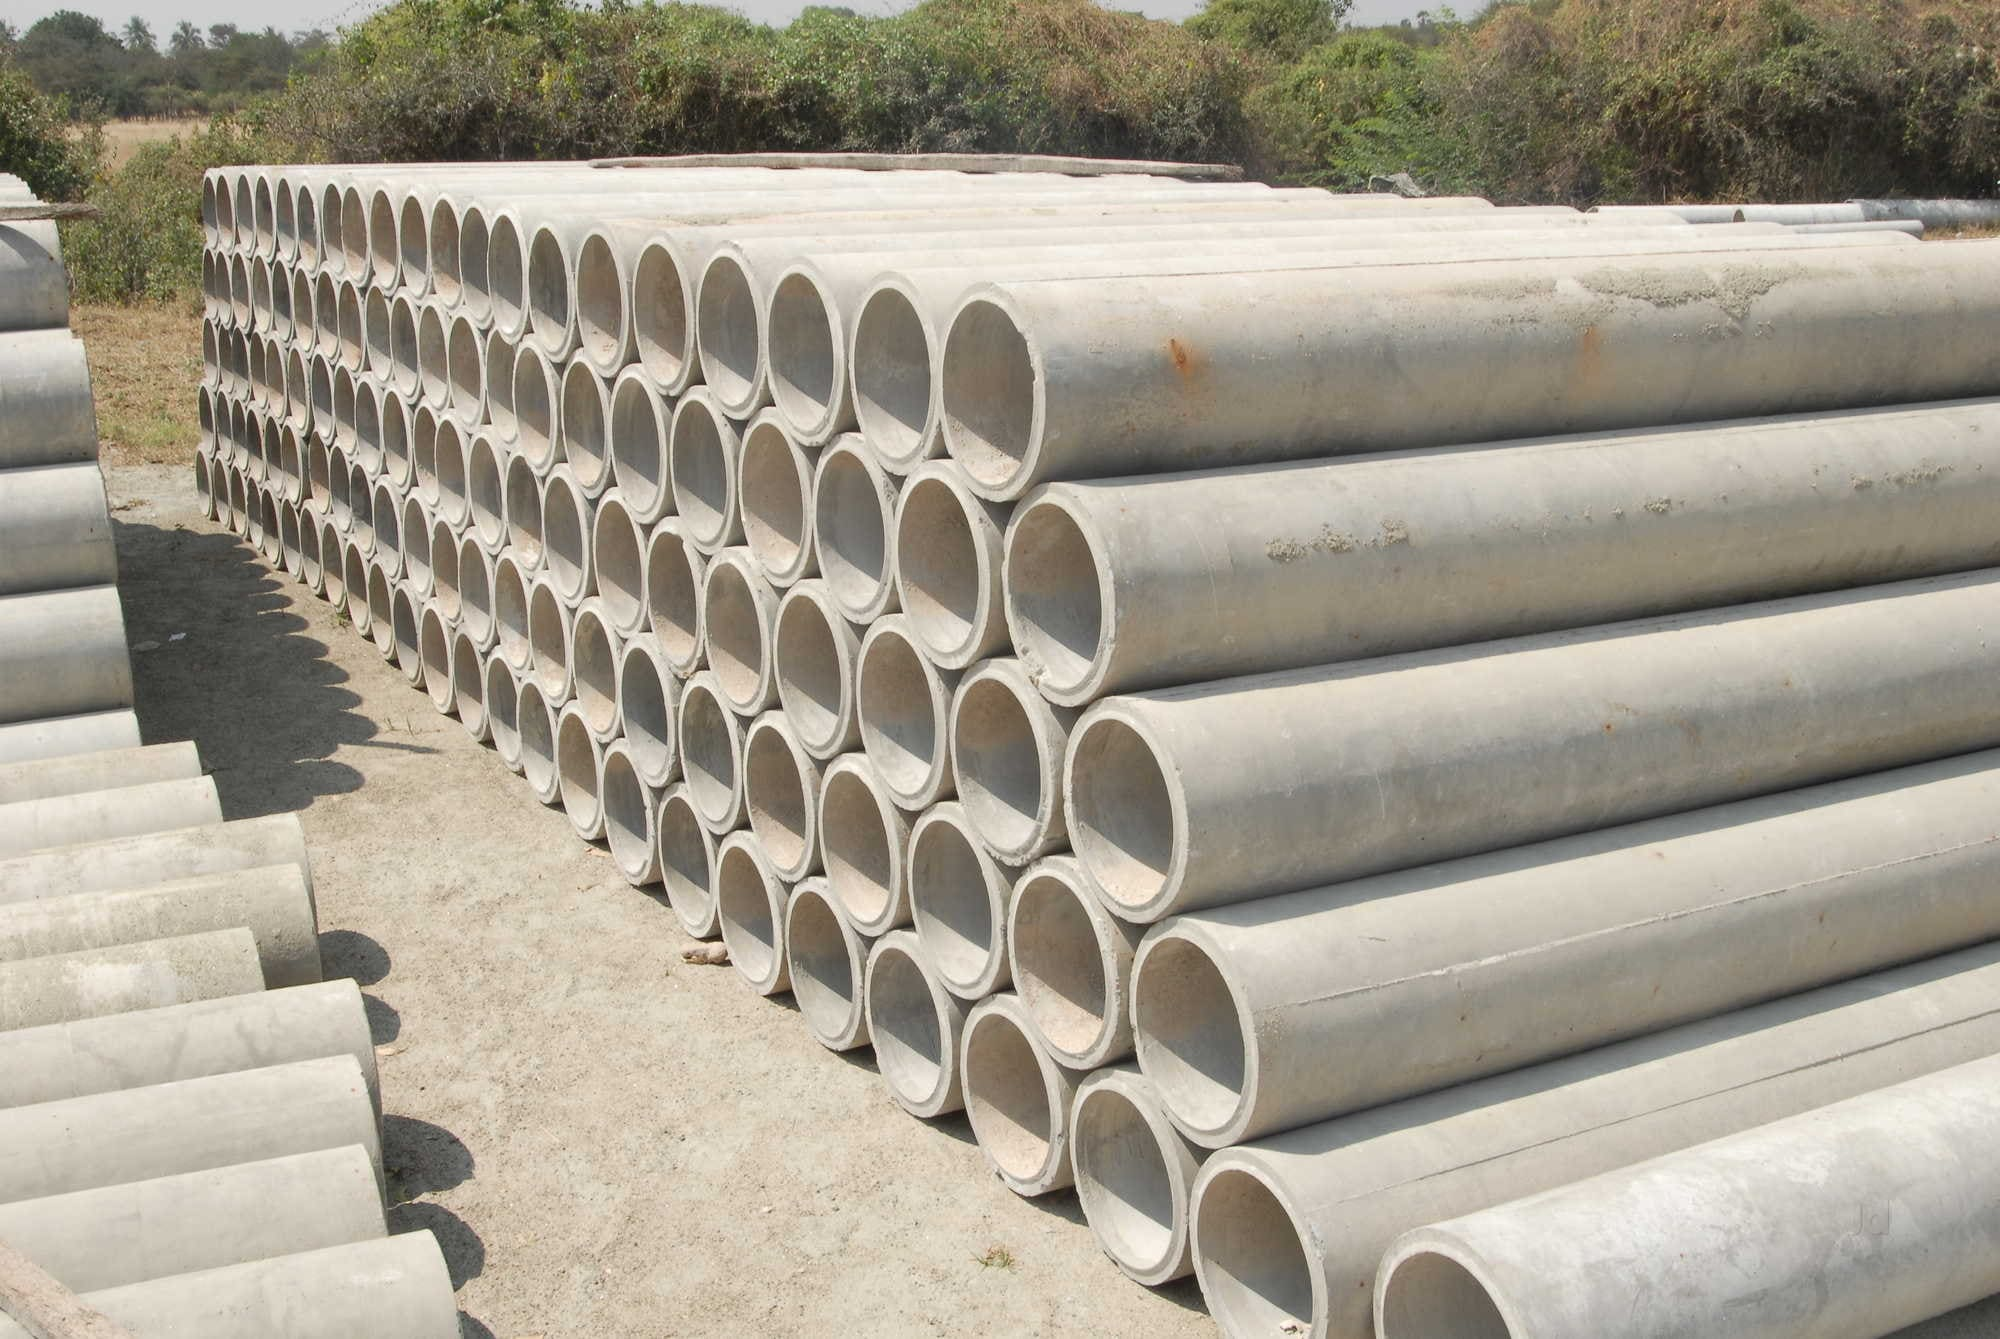 Top RCC Hume Pipes in Bellary - Best Rcc Hume Pipe